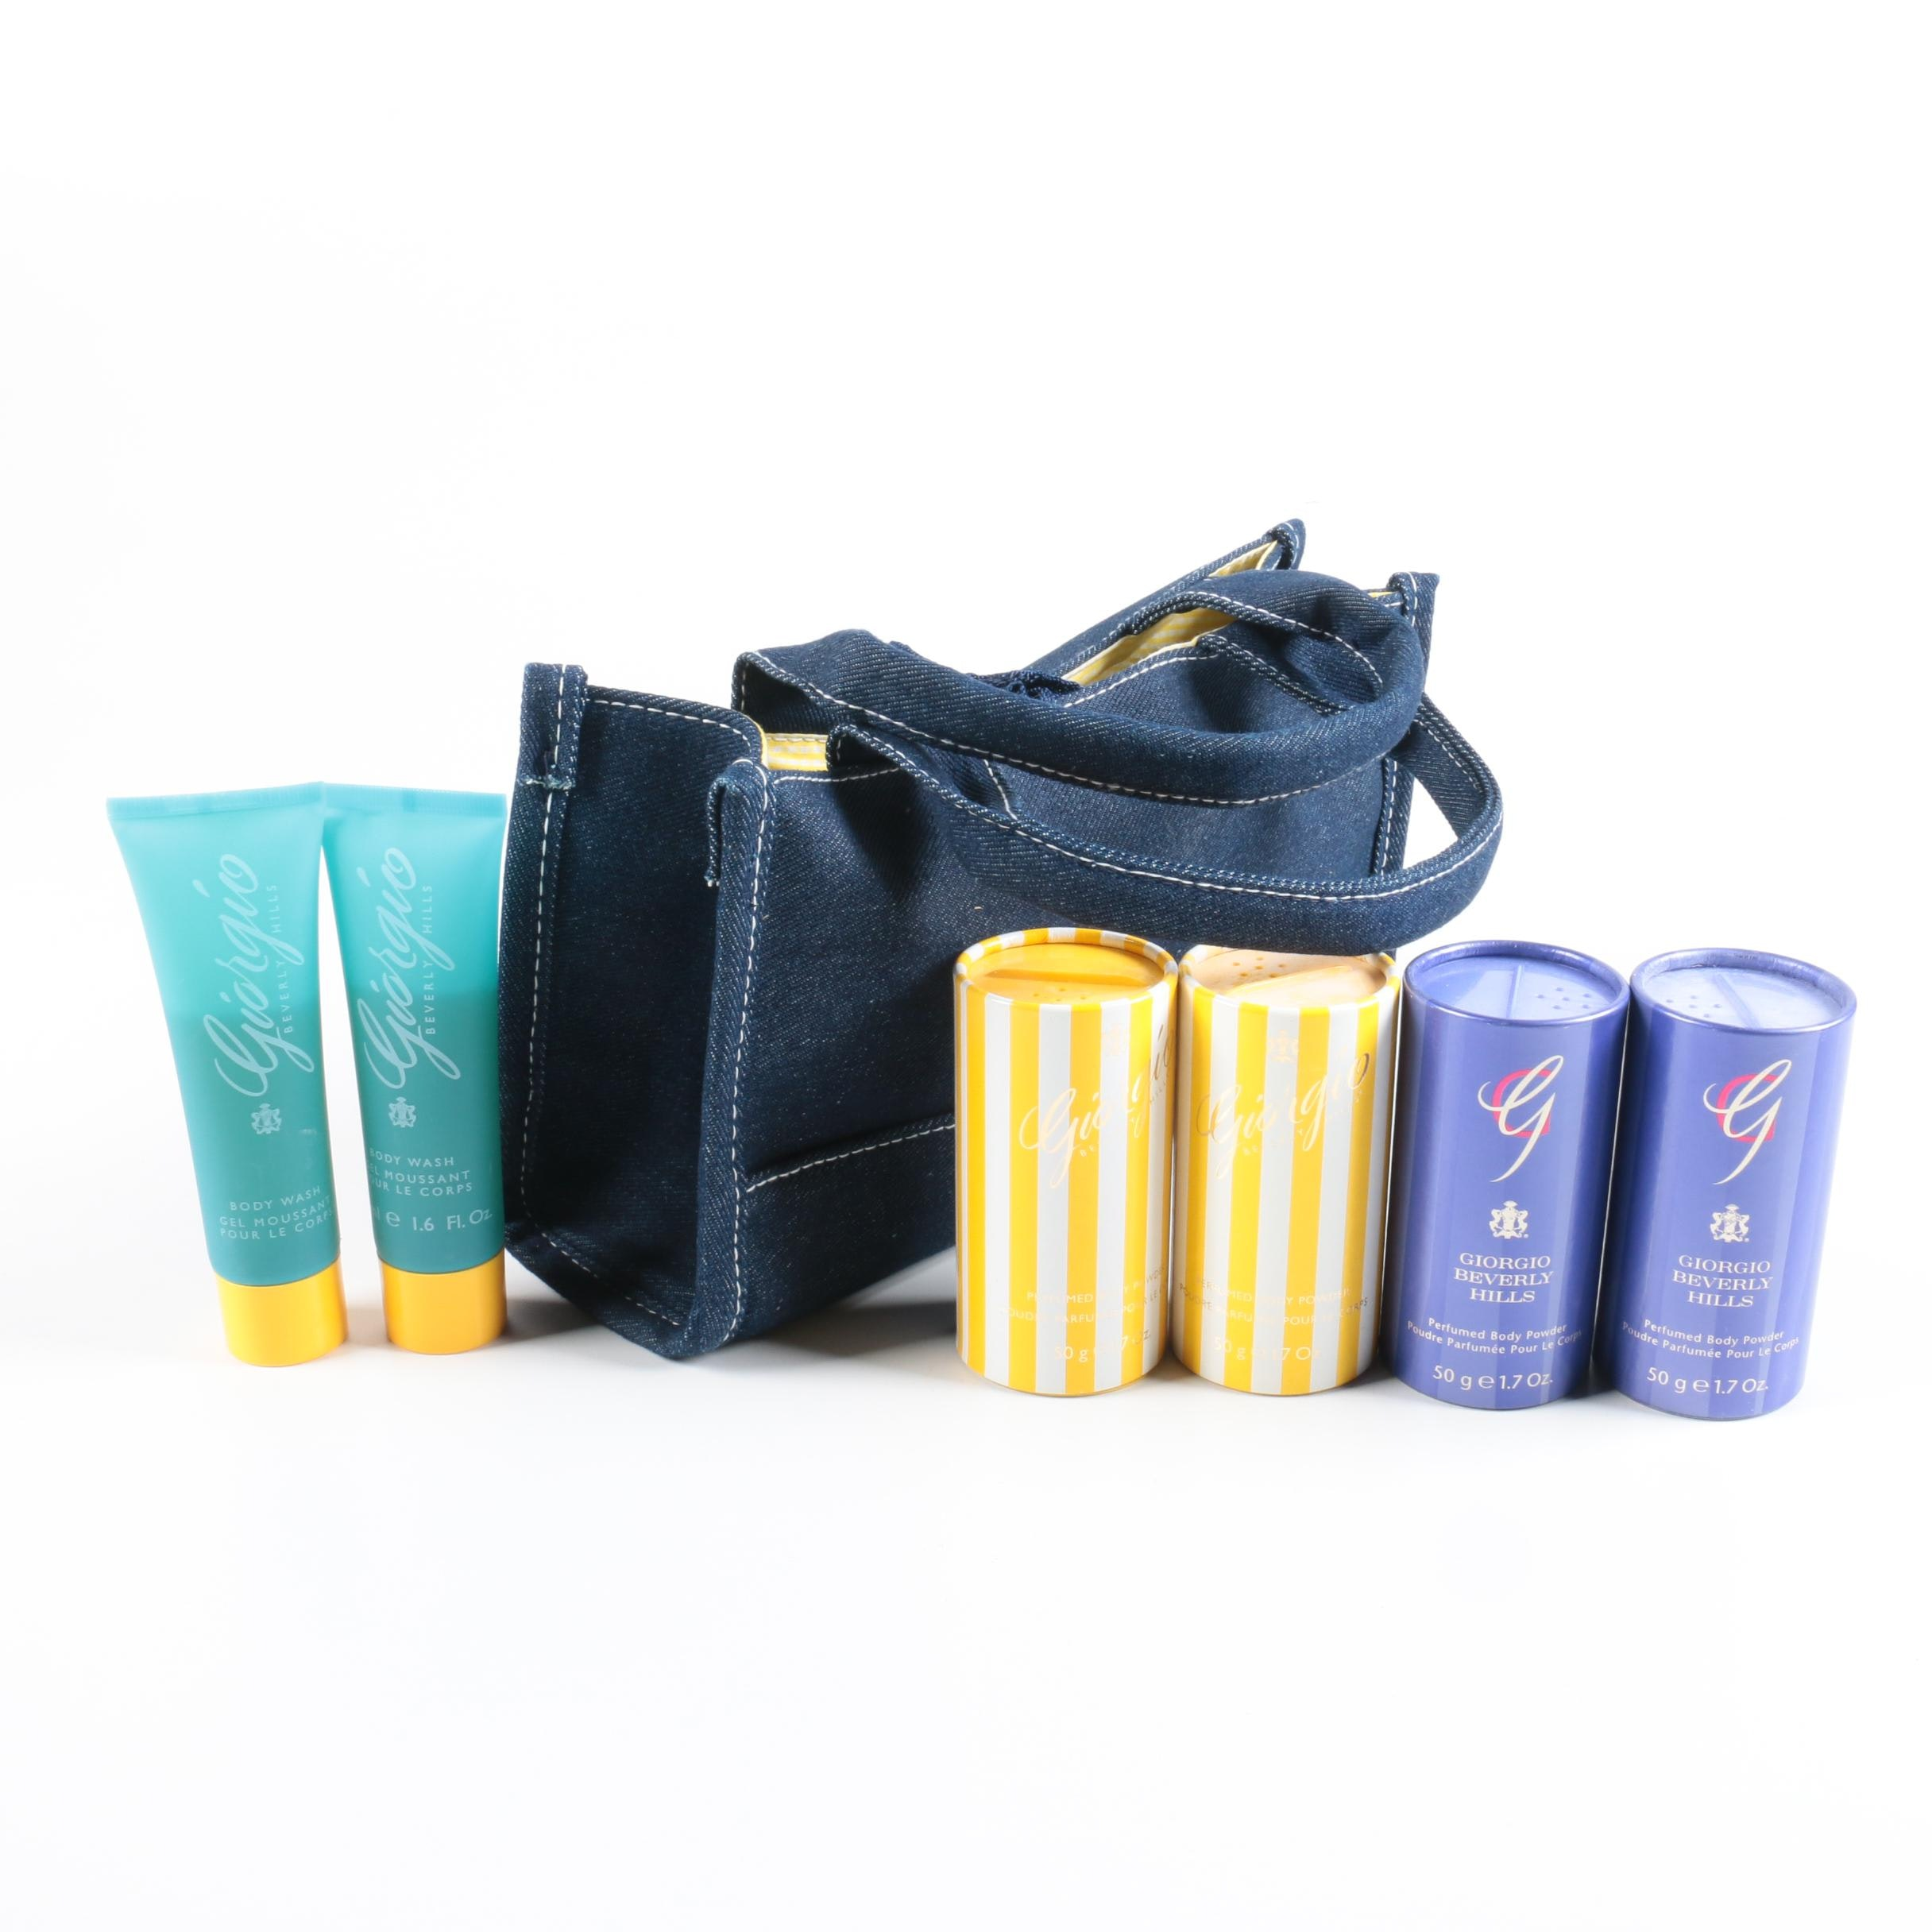 Giorgio Beverly Hills Gift Bag with Beauty Supplies